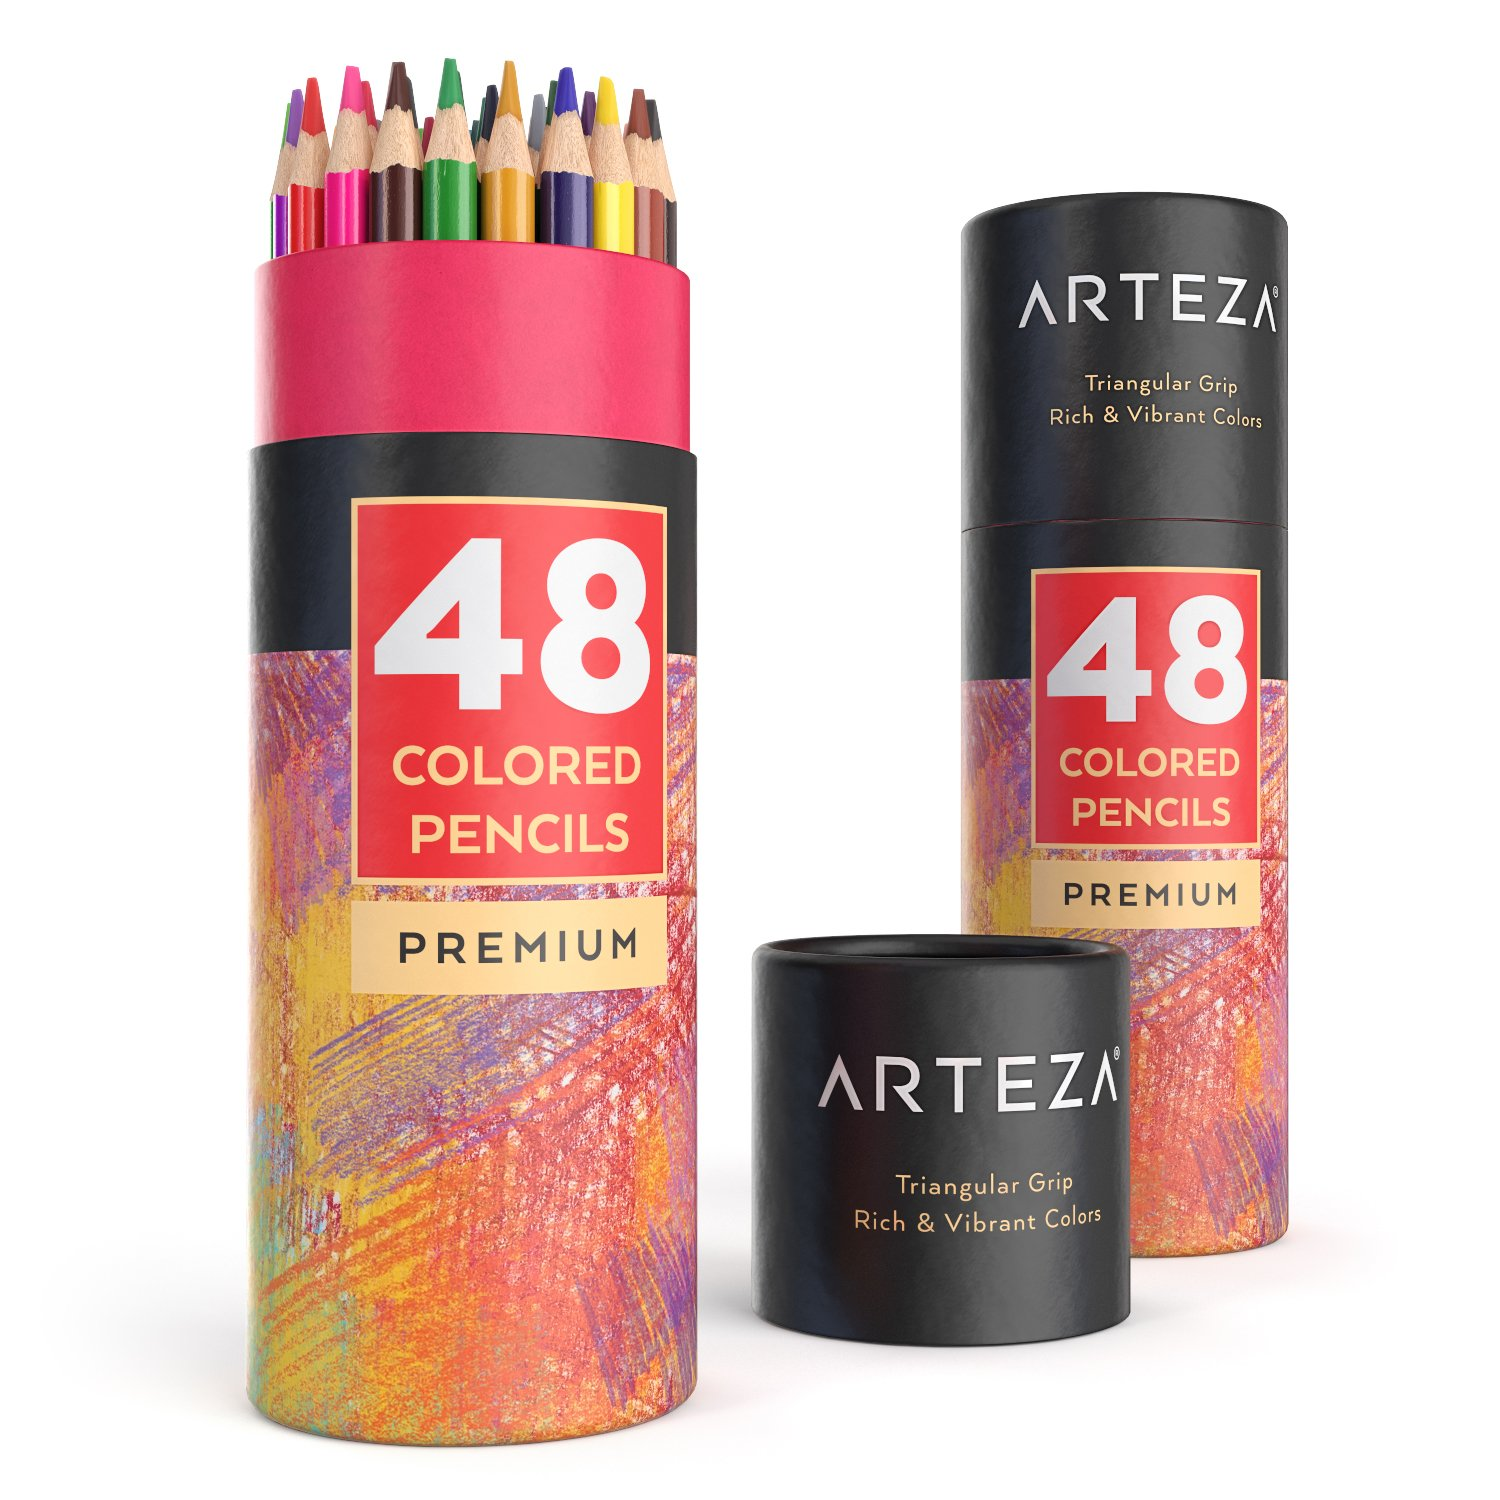 ARTEZA Colored Pencils Set, 48 Colors with Color Names, Triangular shaped, Pre sharpened, Soft Wax-Based Cores, Vibrant Artist Pencils Ideal for Drawing Art, Sketching, Shading & Coloring by ARTEZA